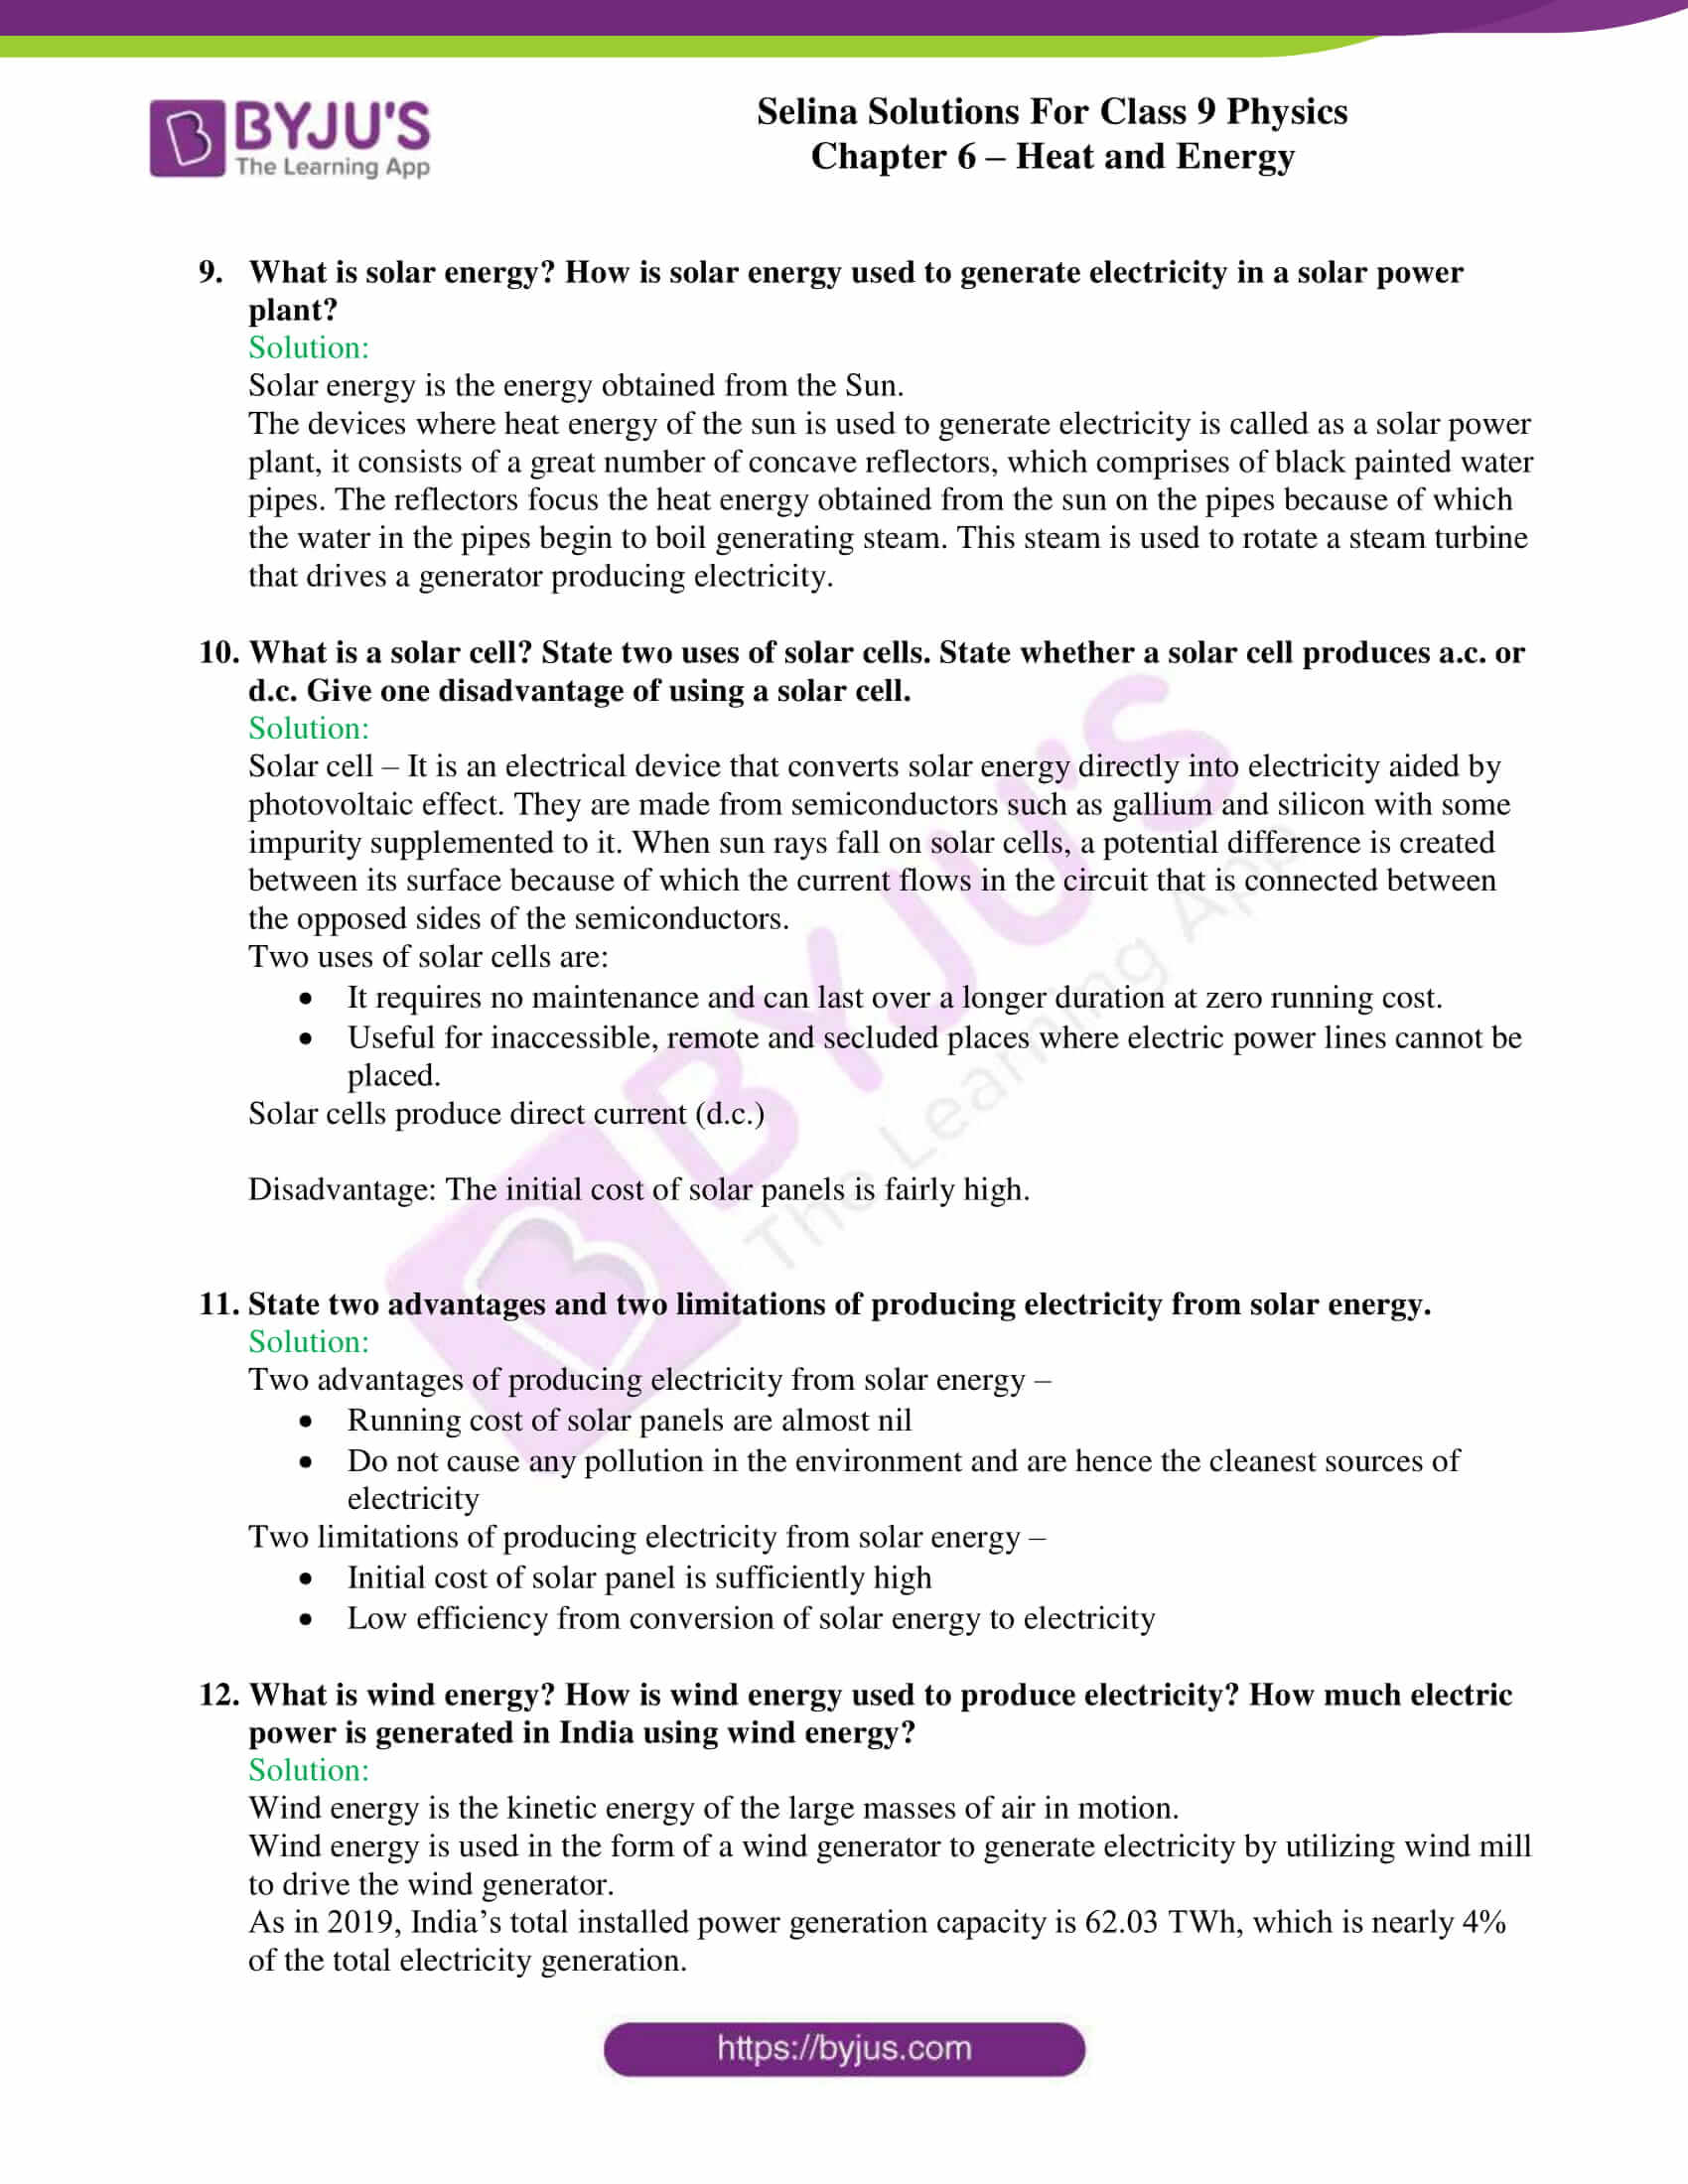 selina solutions class 9 physics chapter 6 Heat and Energy part 16